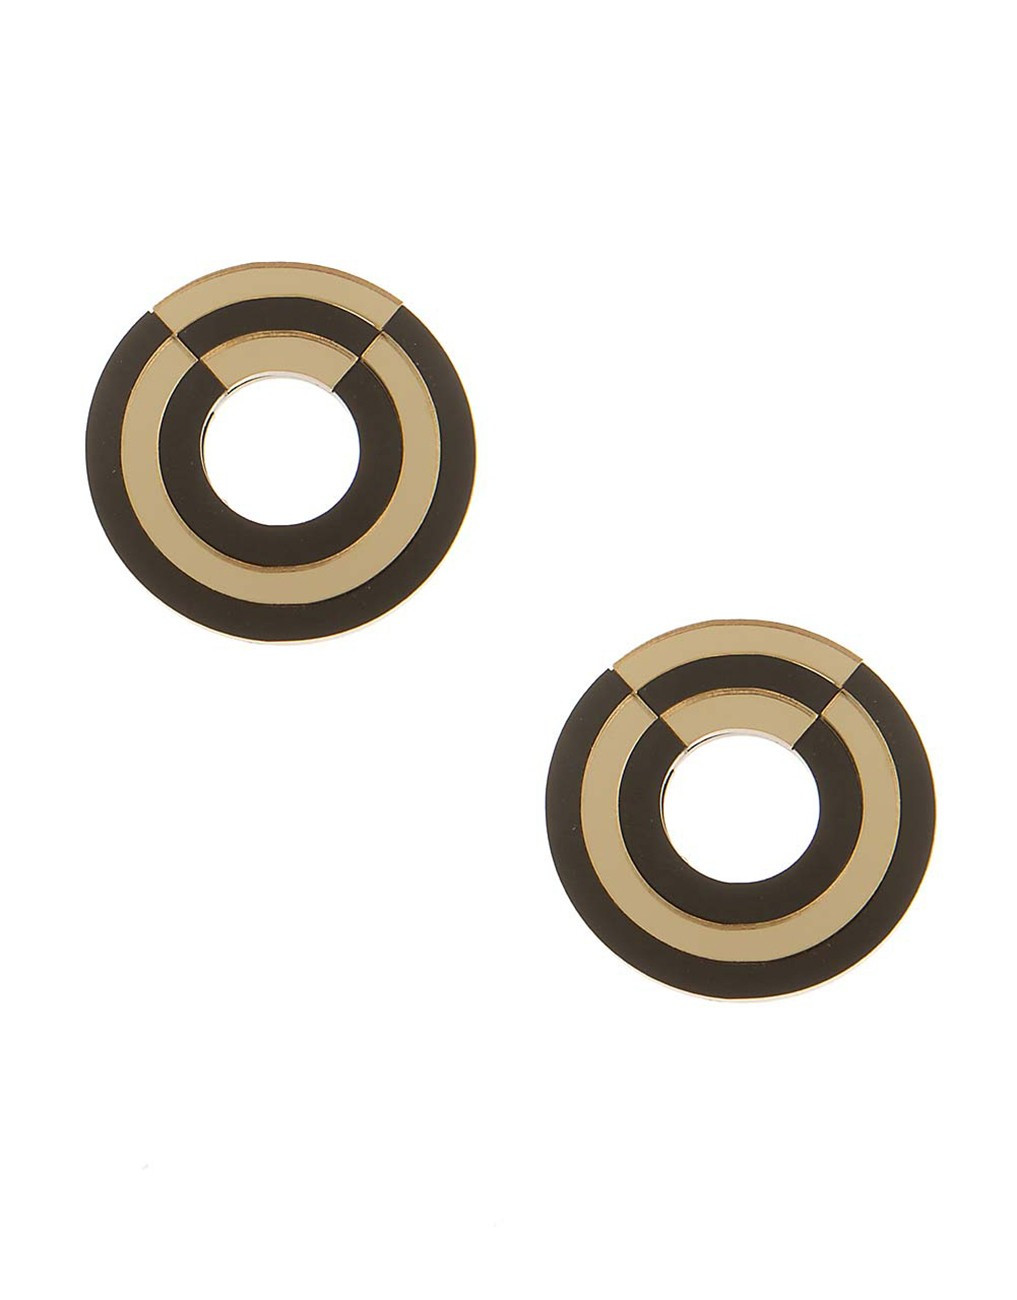 Round earrings with gold details.